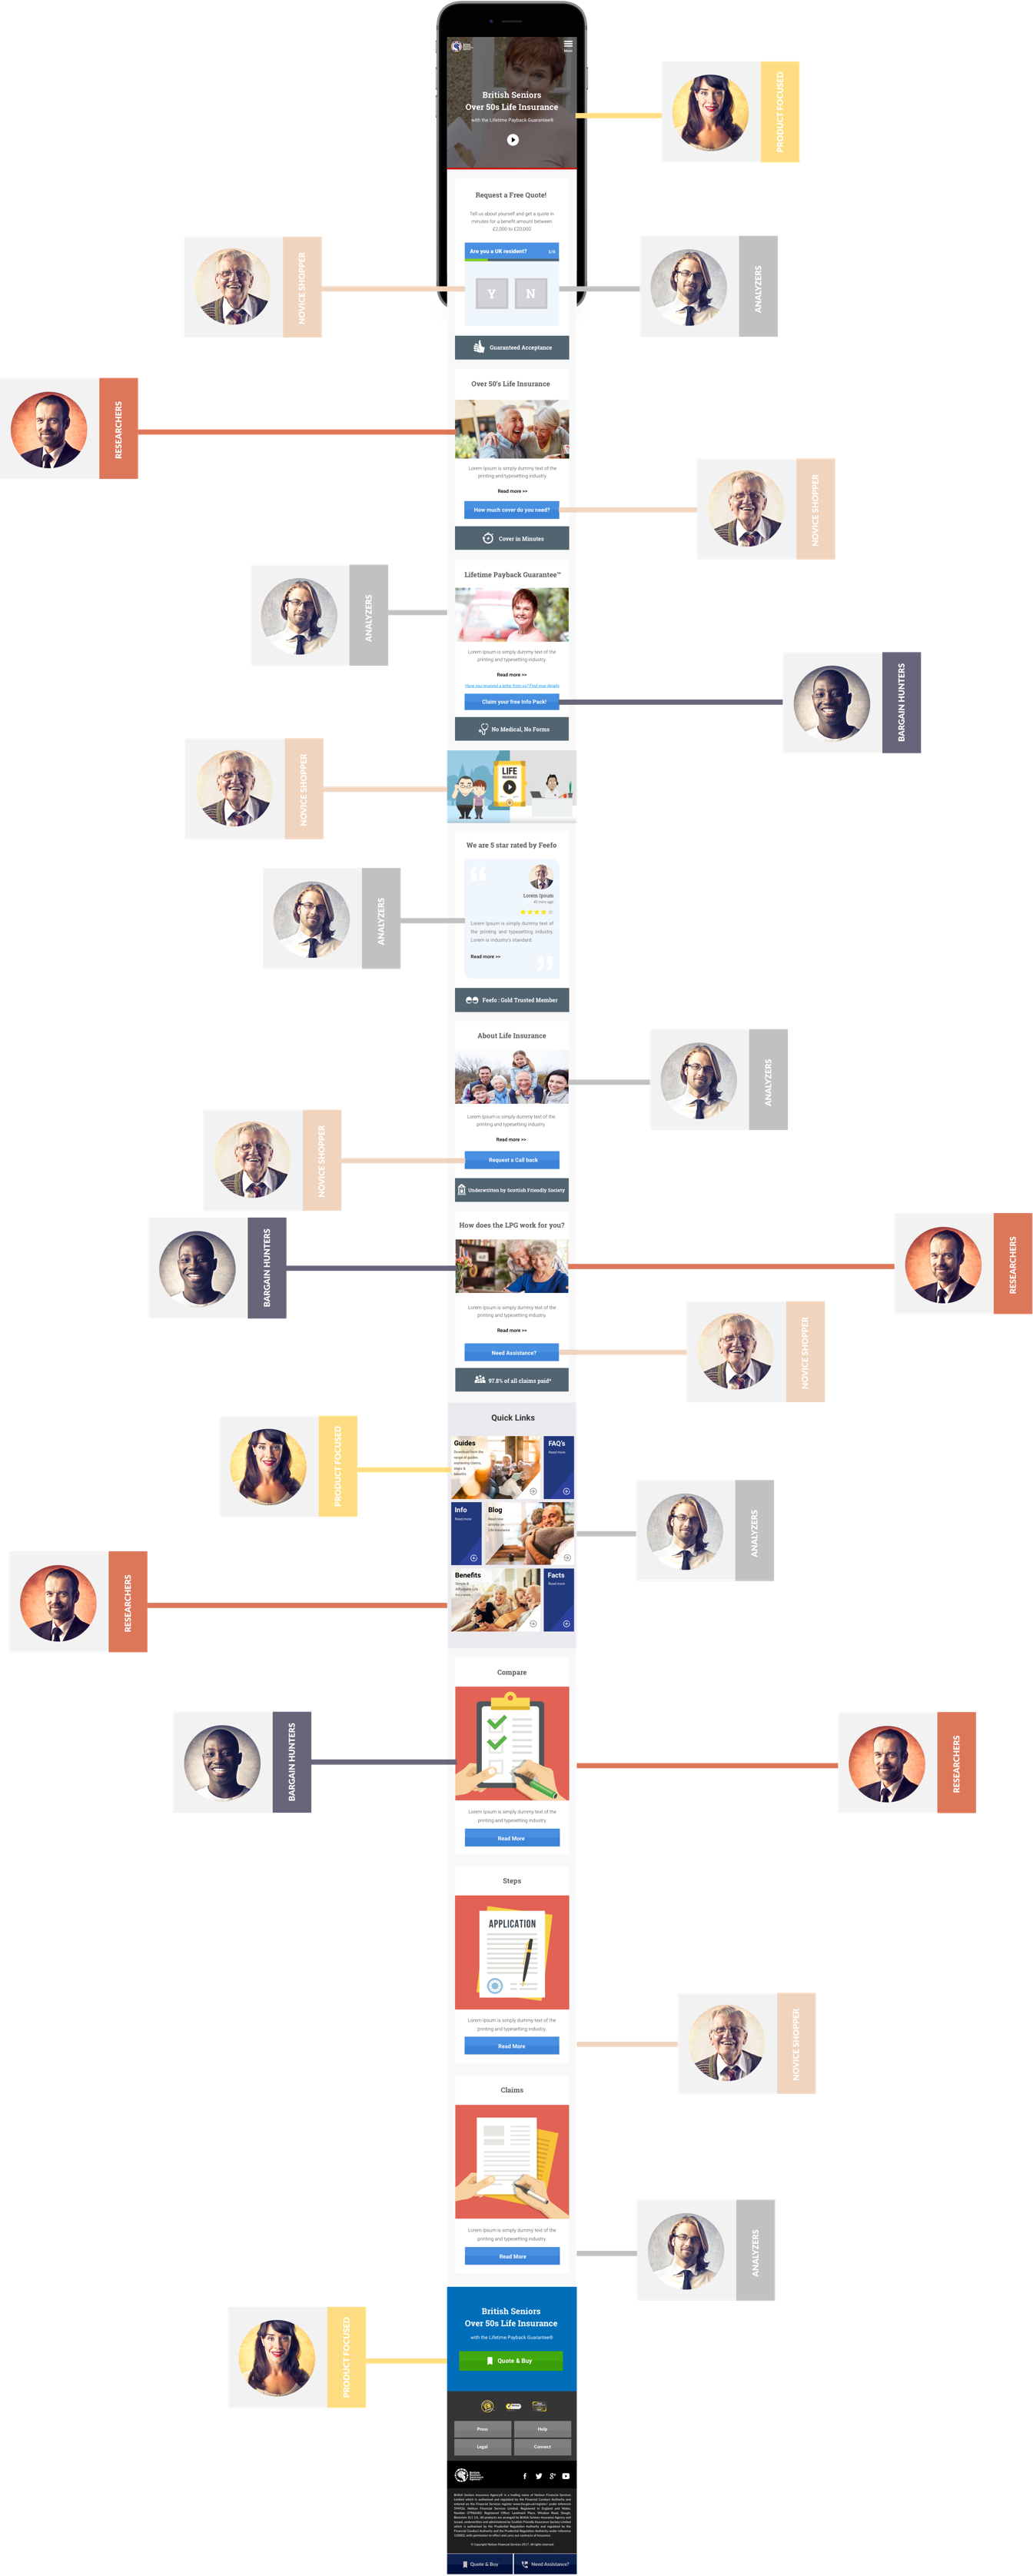 behavioural journey map@3x.png